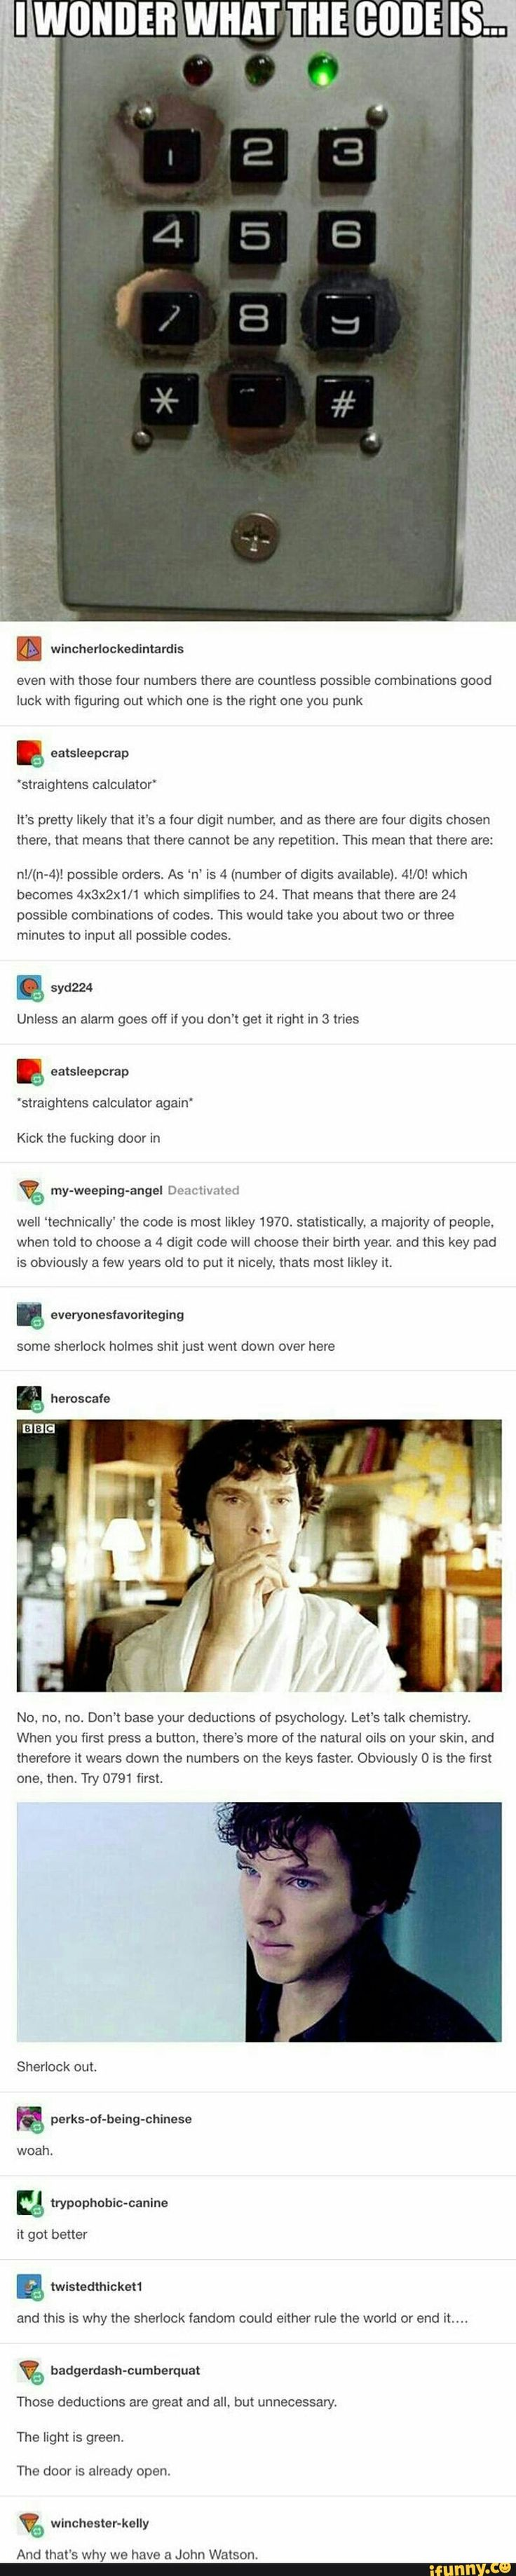 I don't know Sherlock (other than the RDJ movies) but this is still fantastic